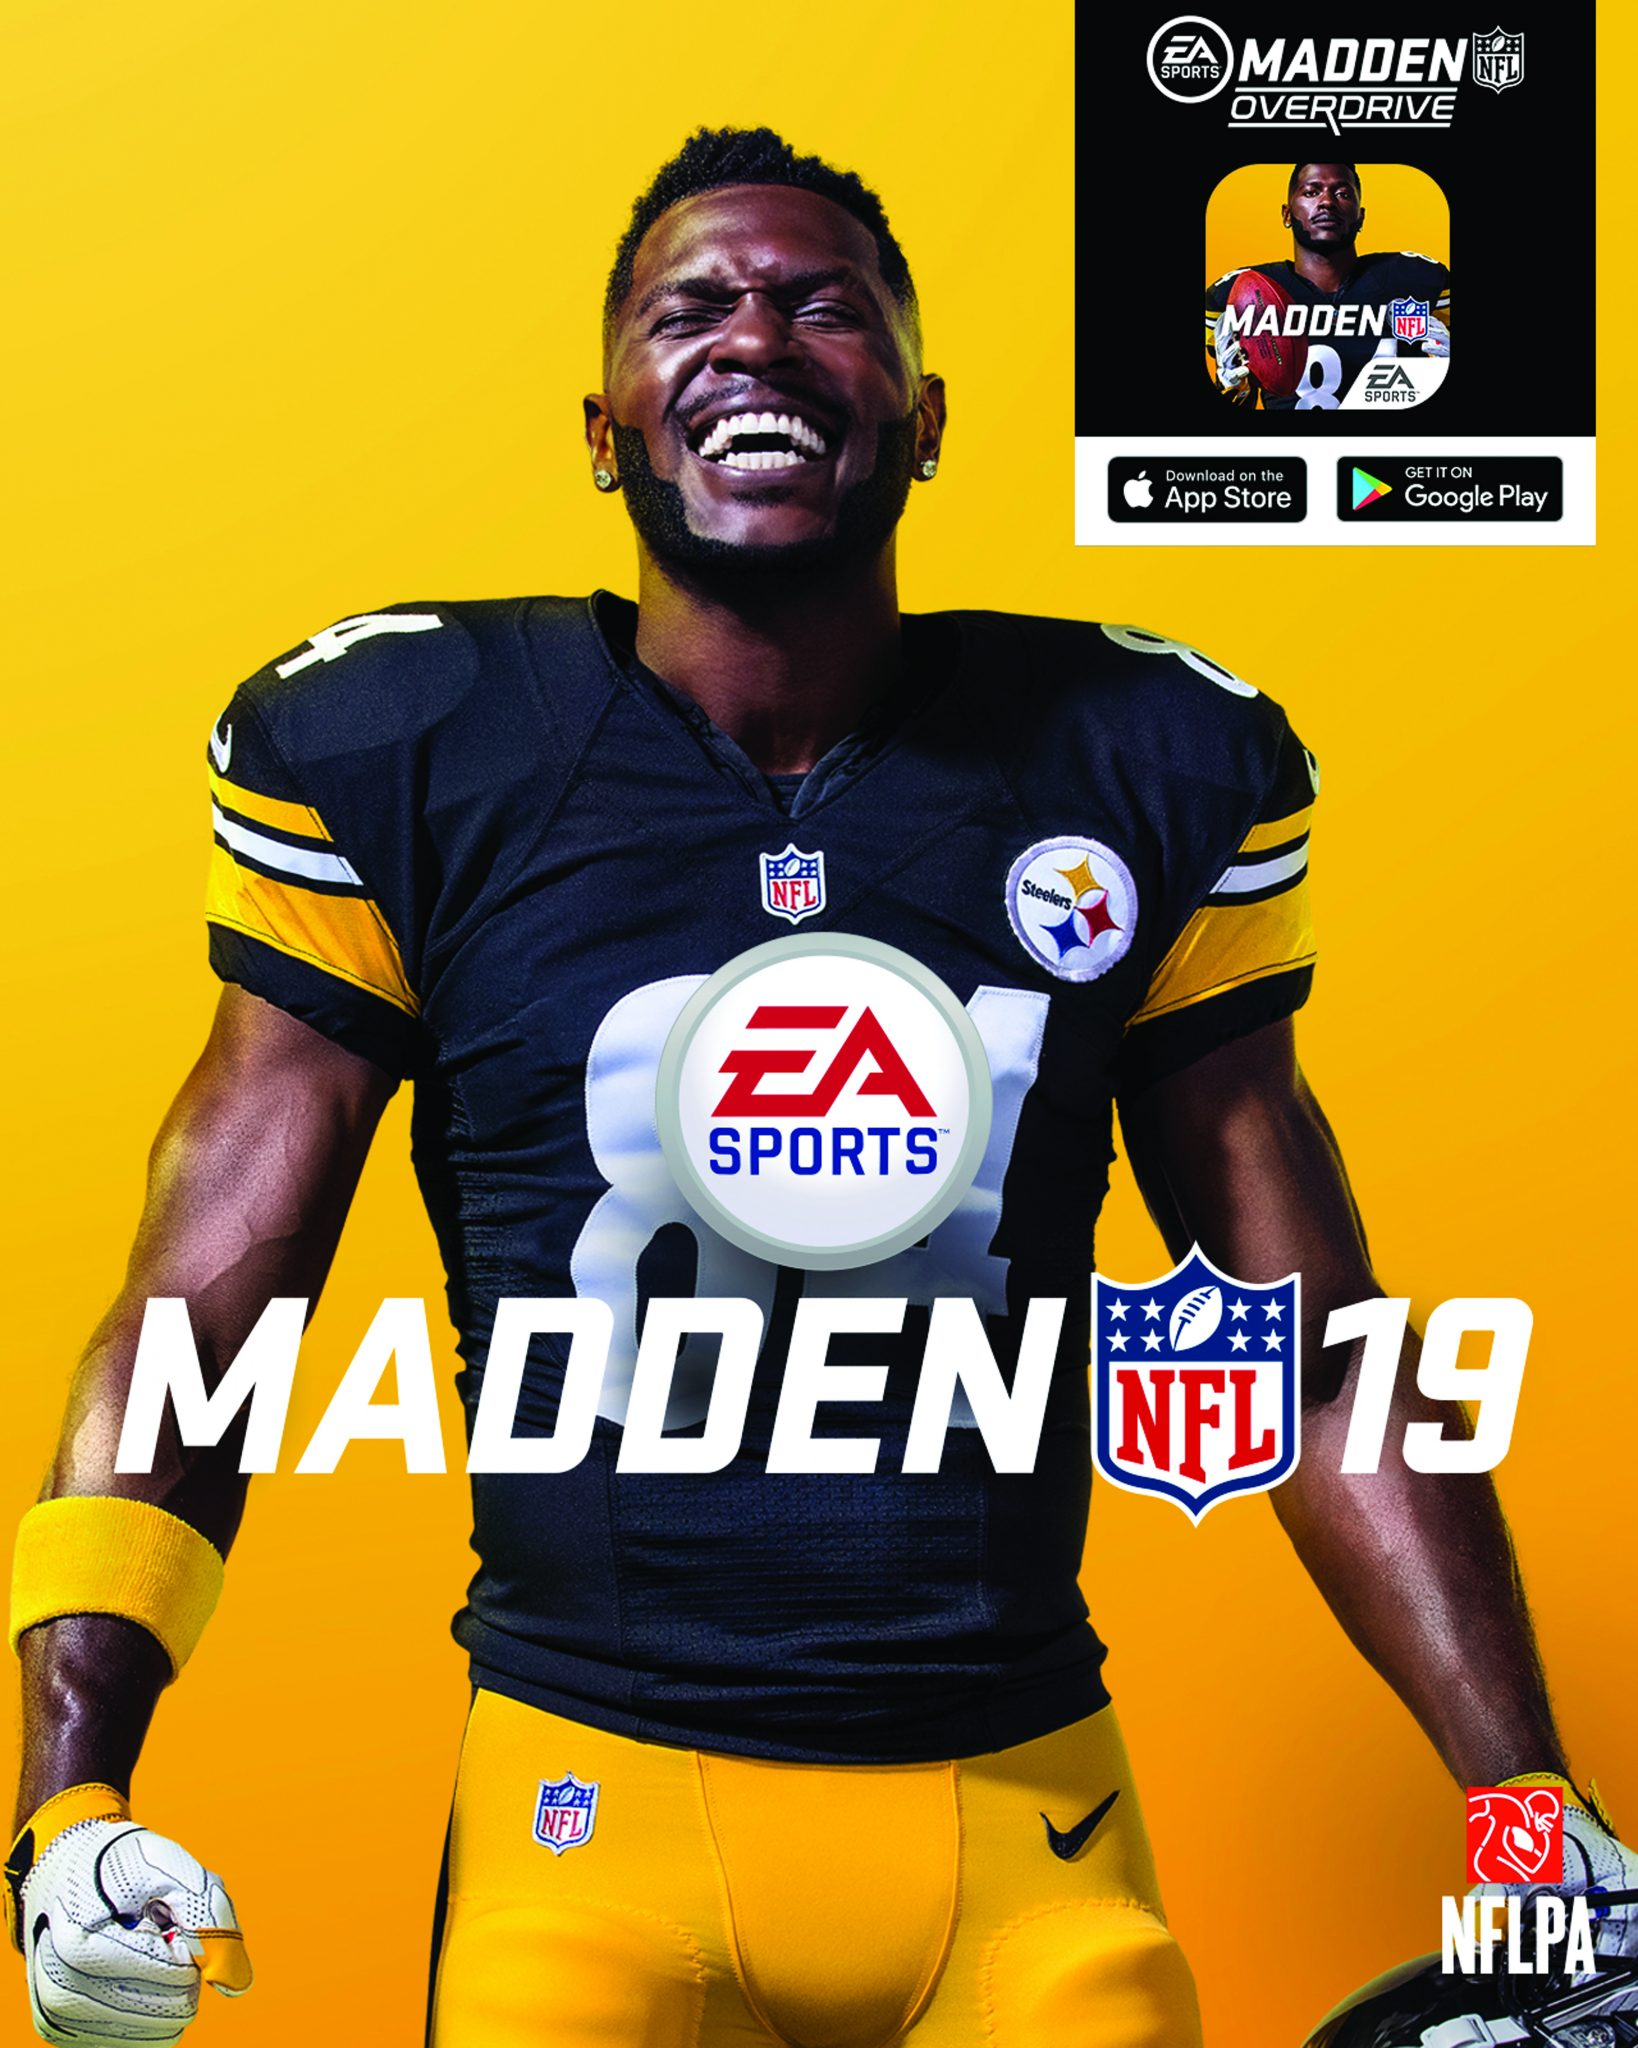 Antonio Brown 2018 >> Steelers All Pro Wr Antonio Brown Is Madden Cover Guy